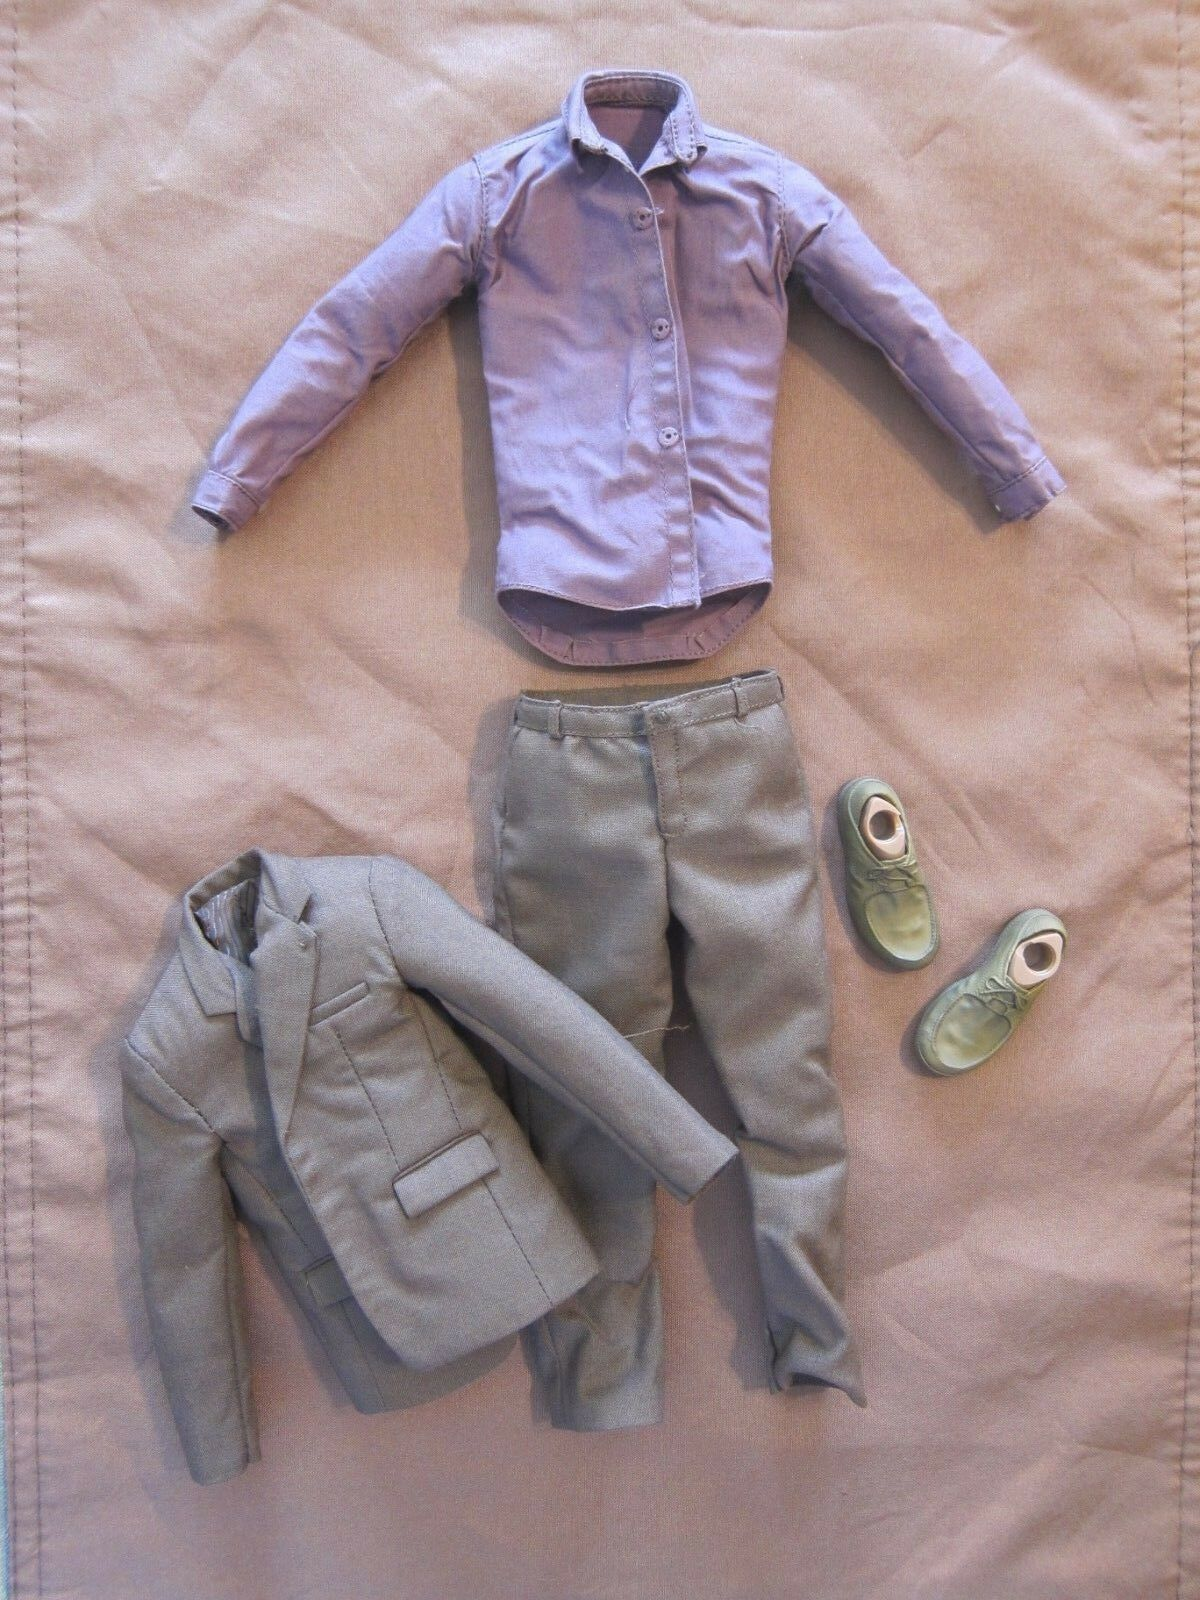 HOT TOYS 1 6  AVENGERS  BRUCE BANNER - COMPLETE OUTFIT W  SHOES  ---US SELLER--